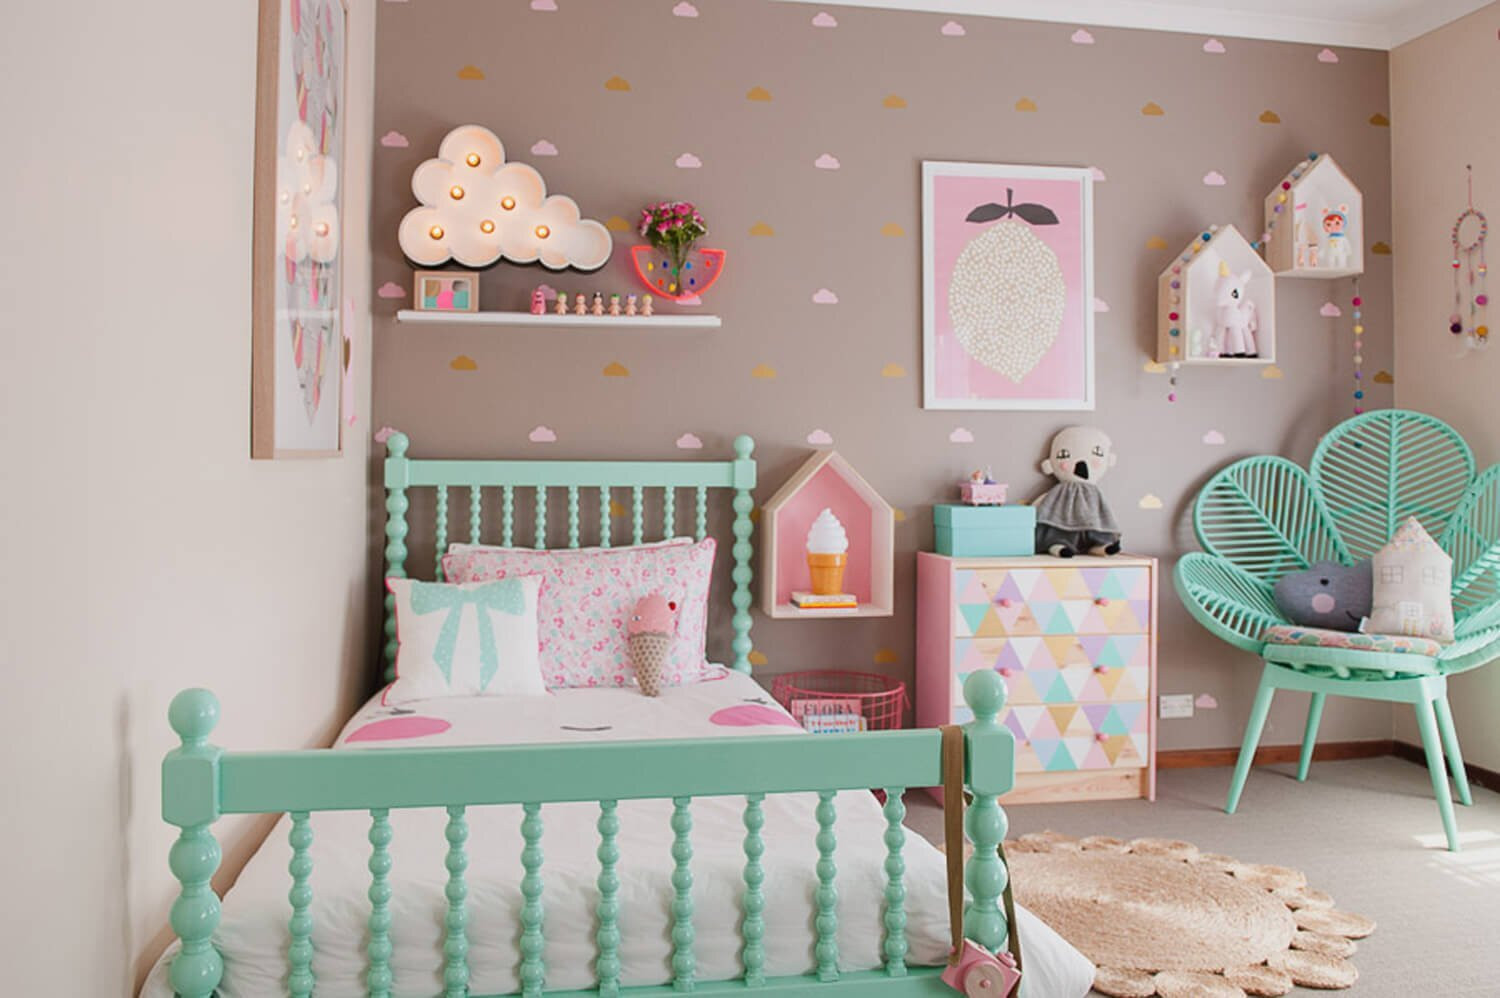 Kids Bedroom Design 27 Kids Bedrooms Ideas that Ll Let them Explore their